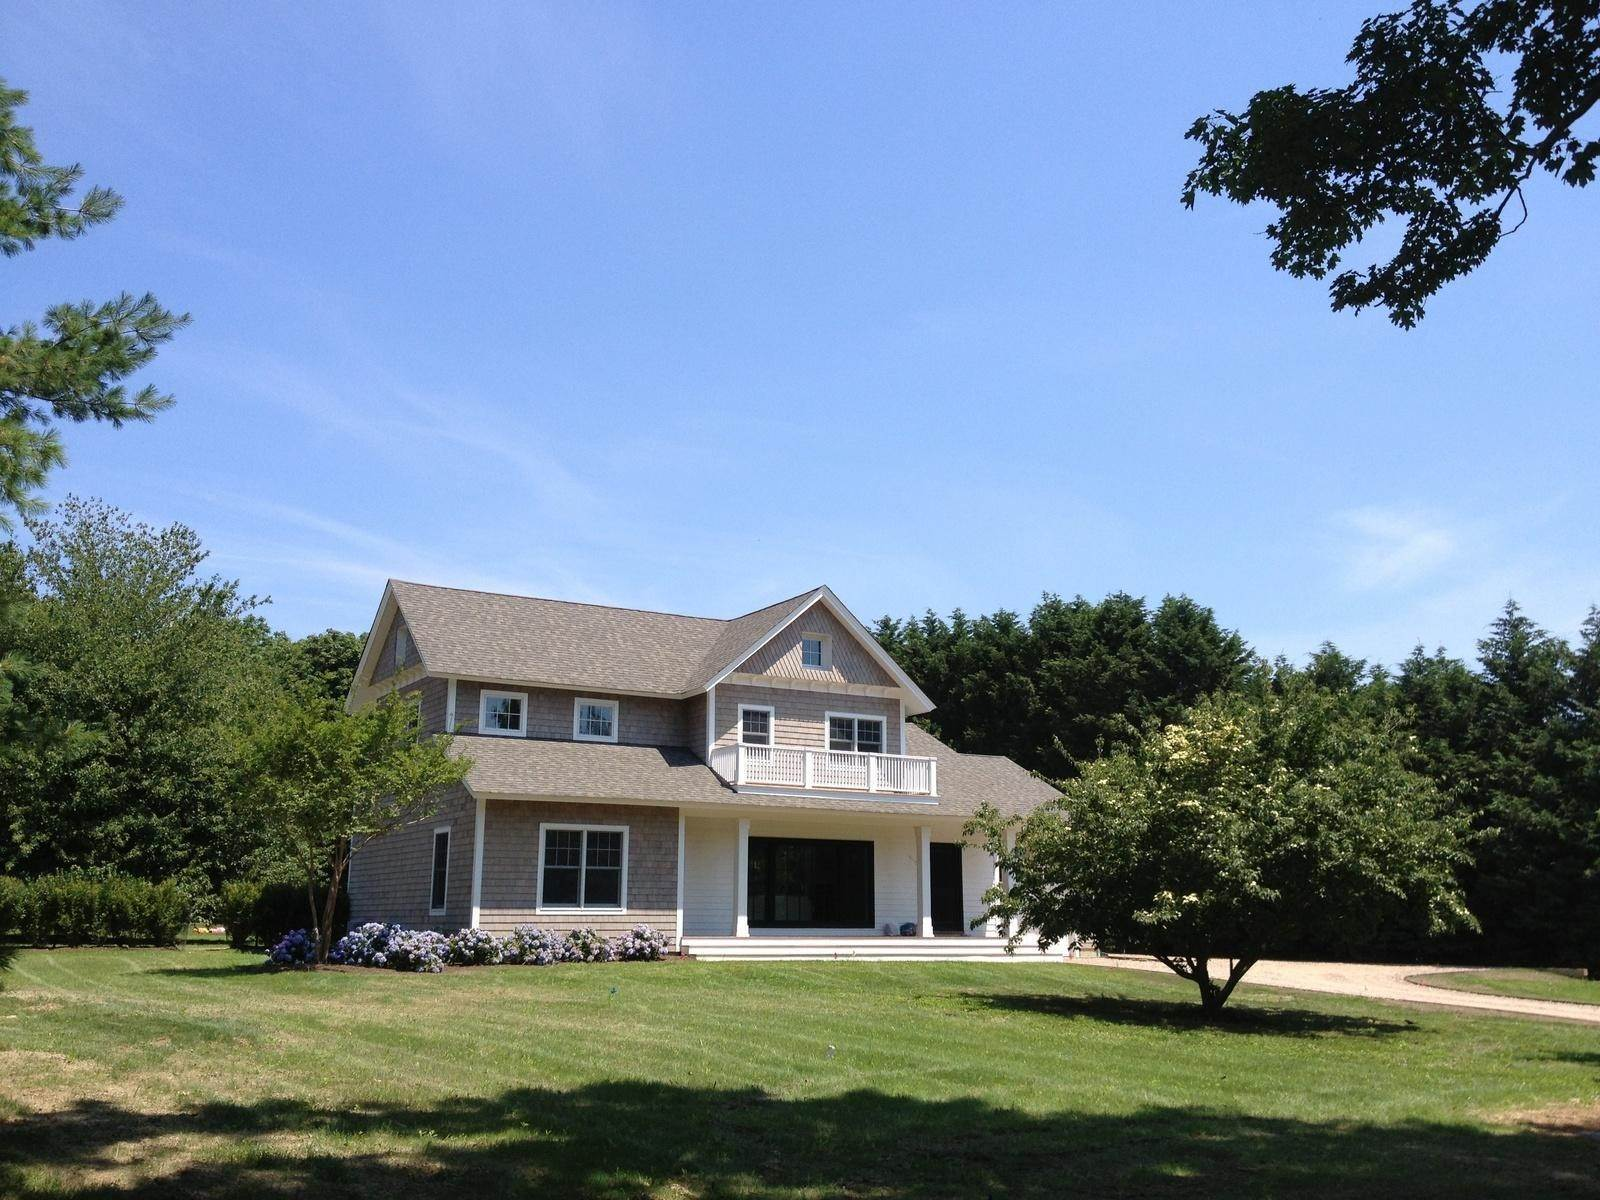 Single Family Home at Light Filled New Construction Bridgehampton Village Bridgehampton, NY 11932